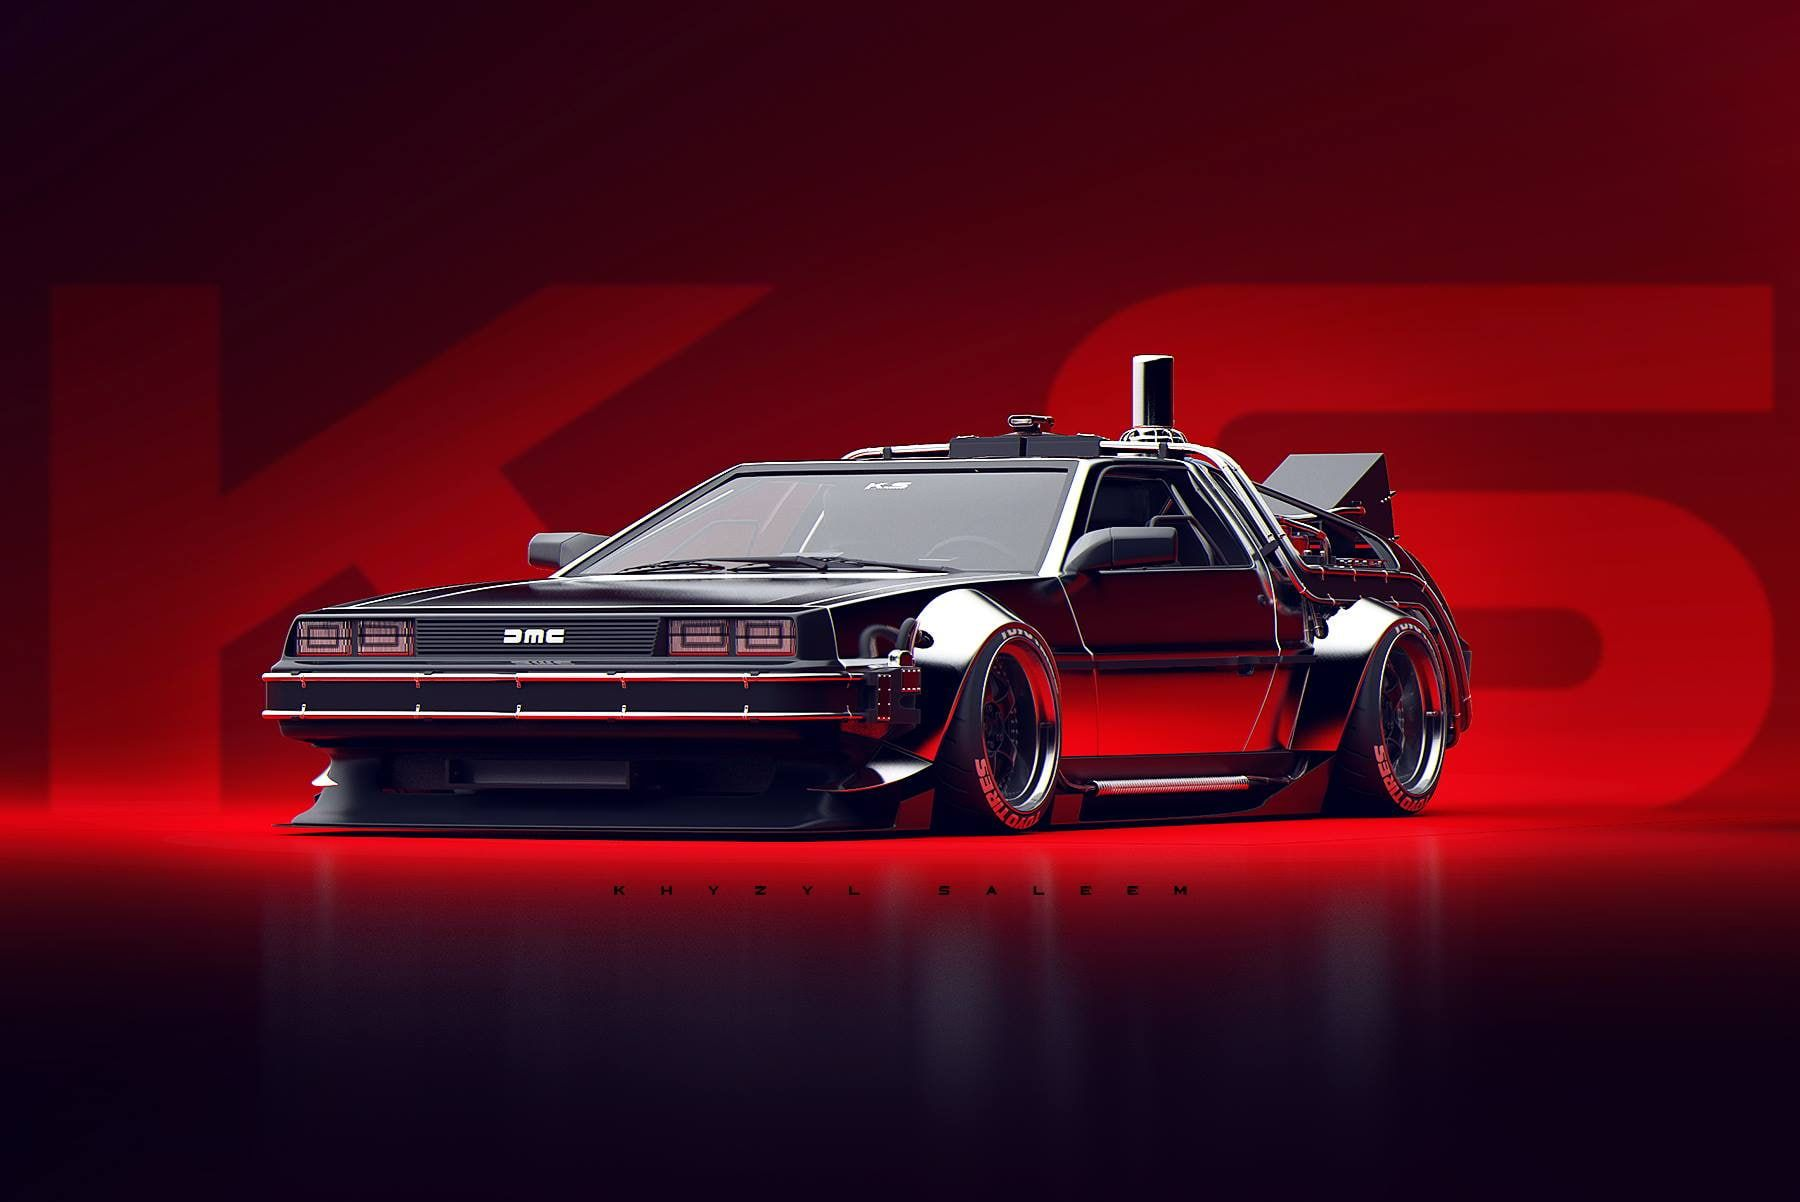 Ultra Hd Back To The Future Wallpaper 4k